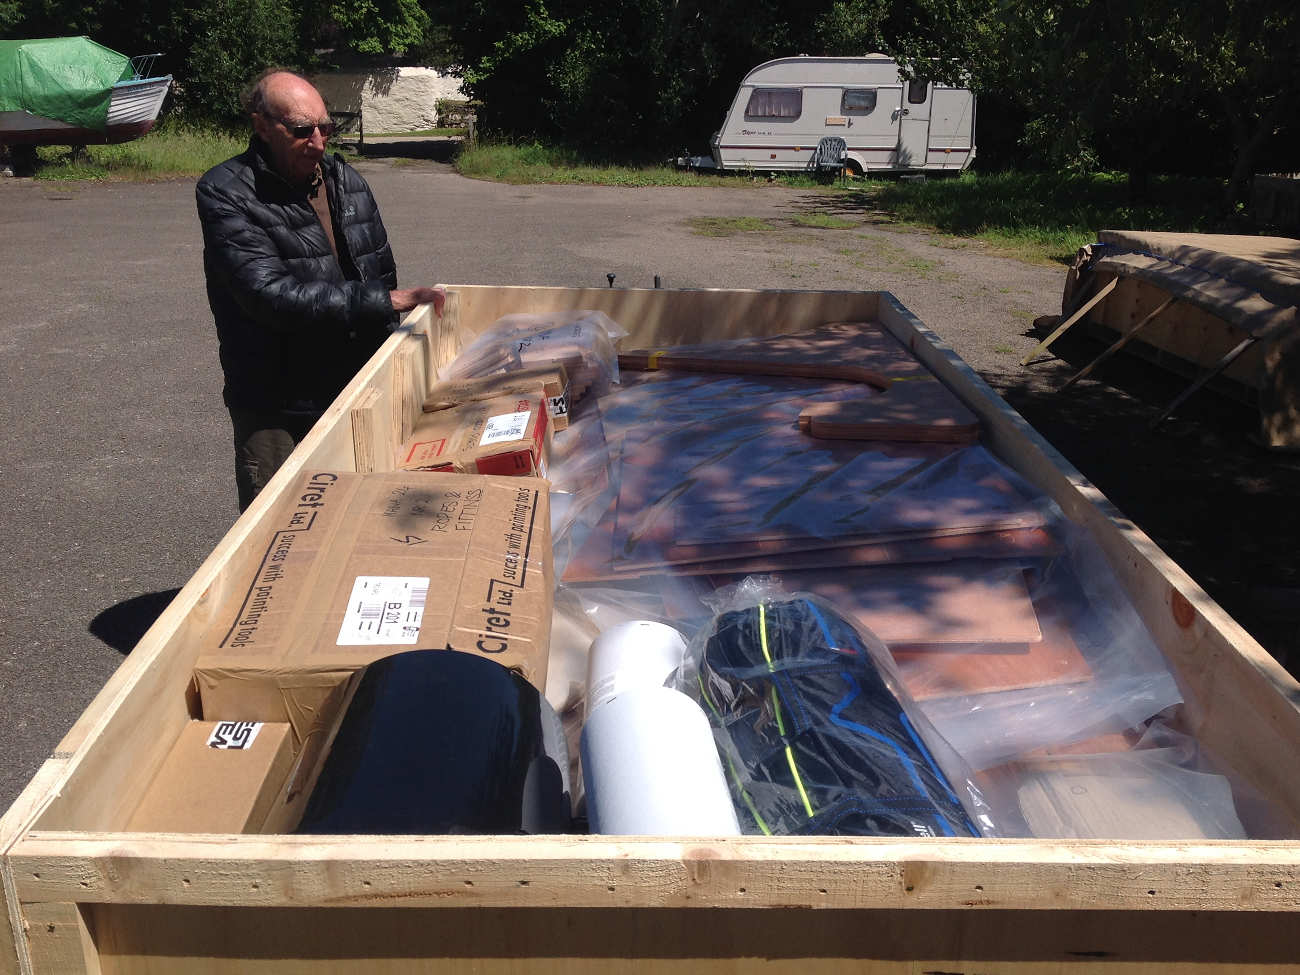 A big box full of plywoood parts and other boat components